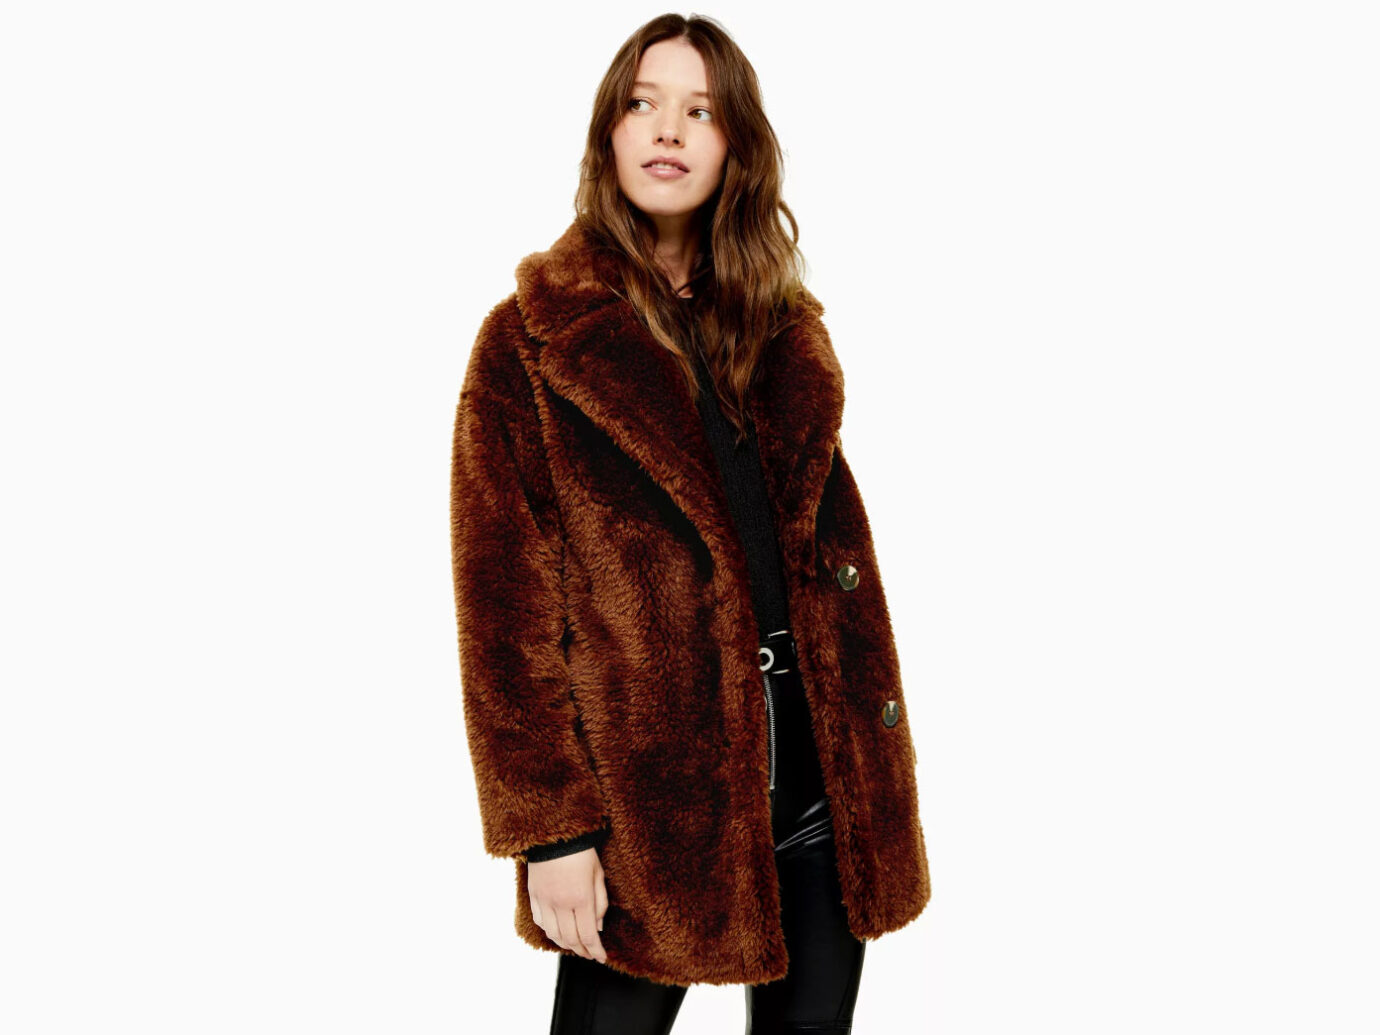 Topshop Chocolate Brown Soft Borg Coat